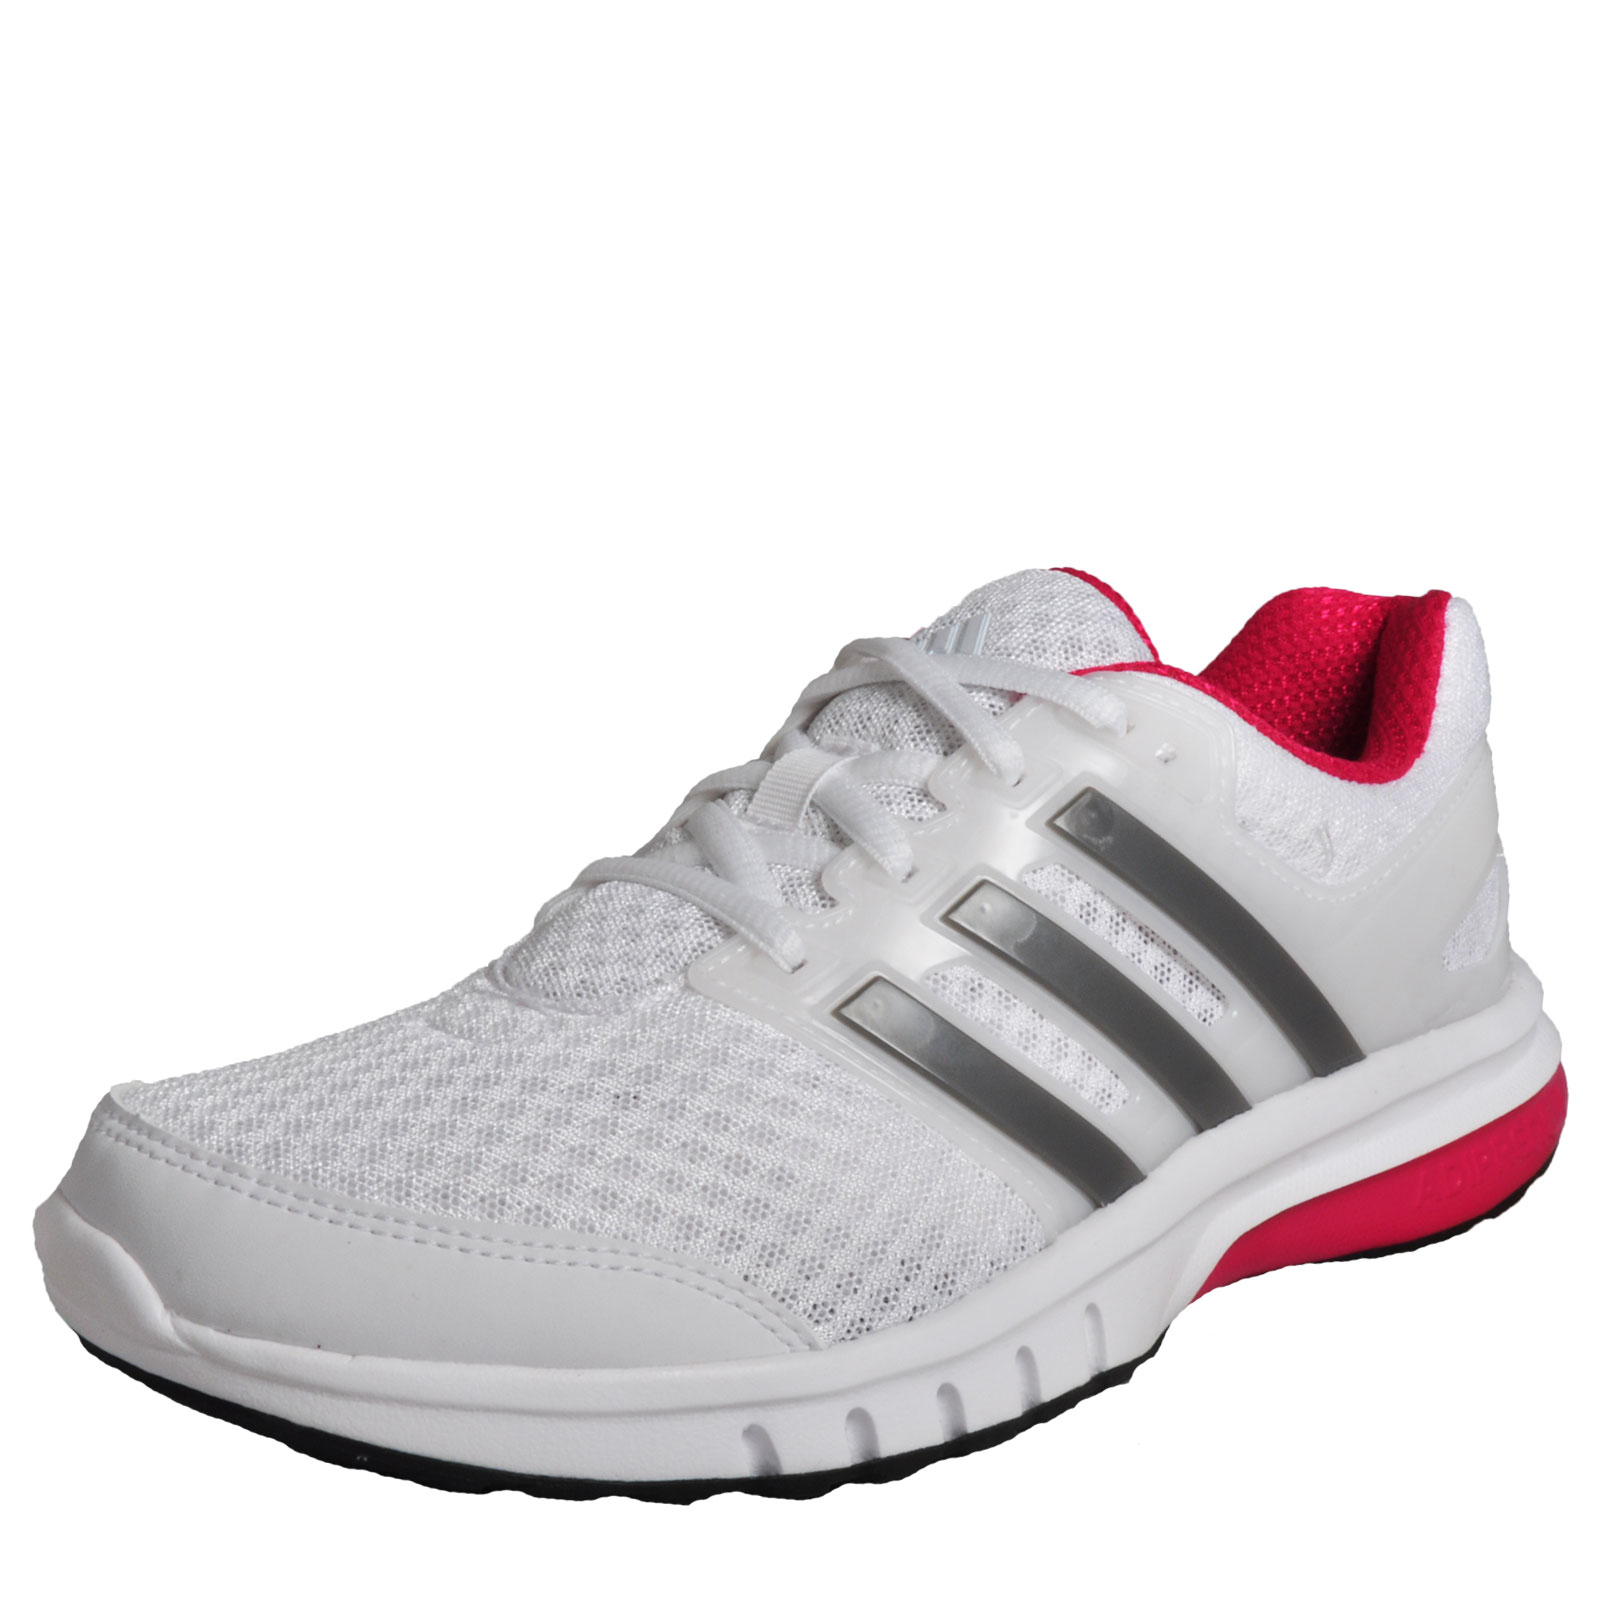 huge selection of 3b923 3454d ADIDAS GALACTIC ELITE WOMENS RUNNING SHOE TRAINER UK SIZE 7.5  BLACK SILVER PINK